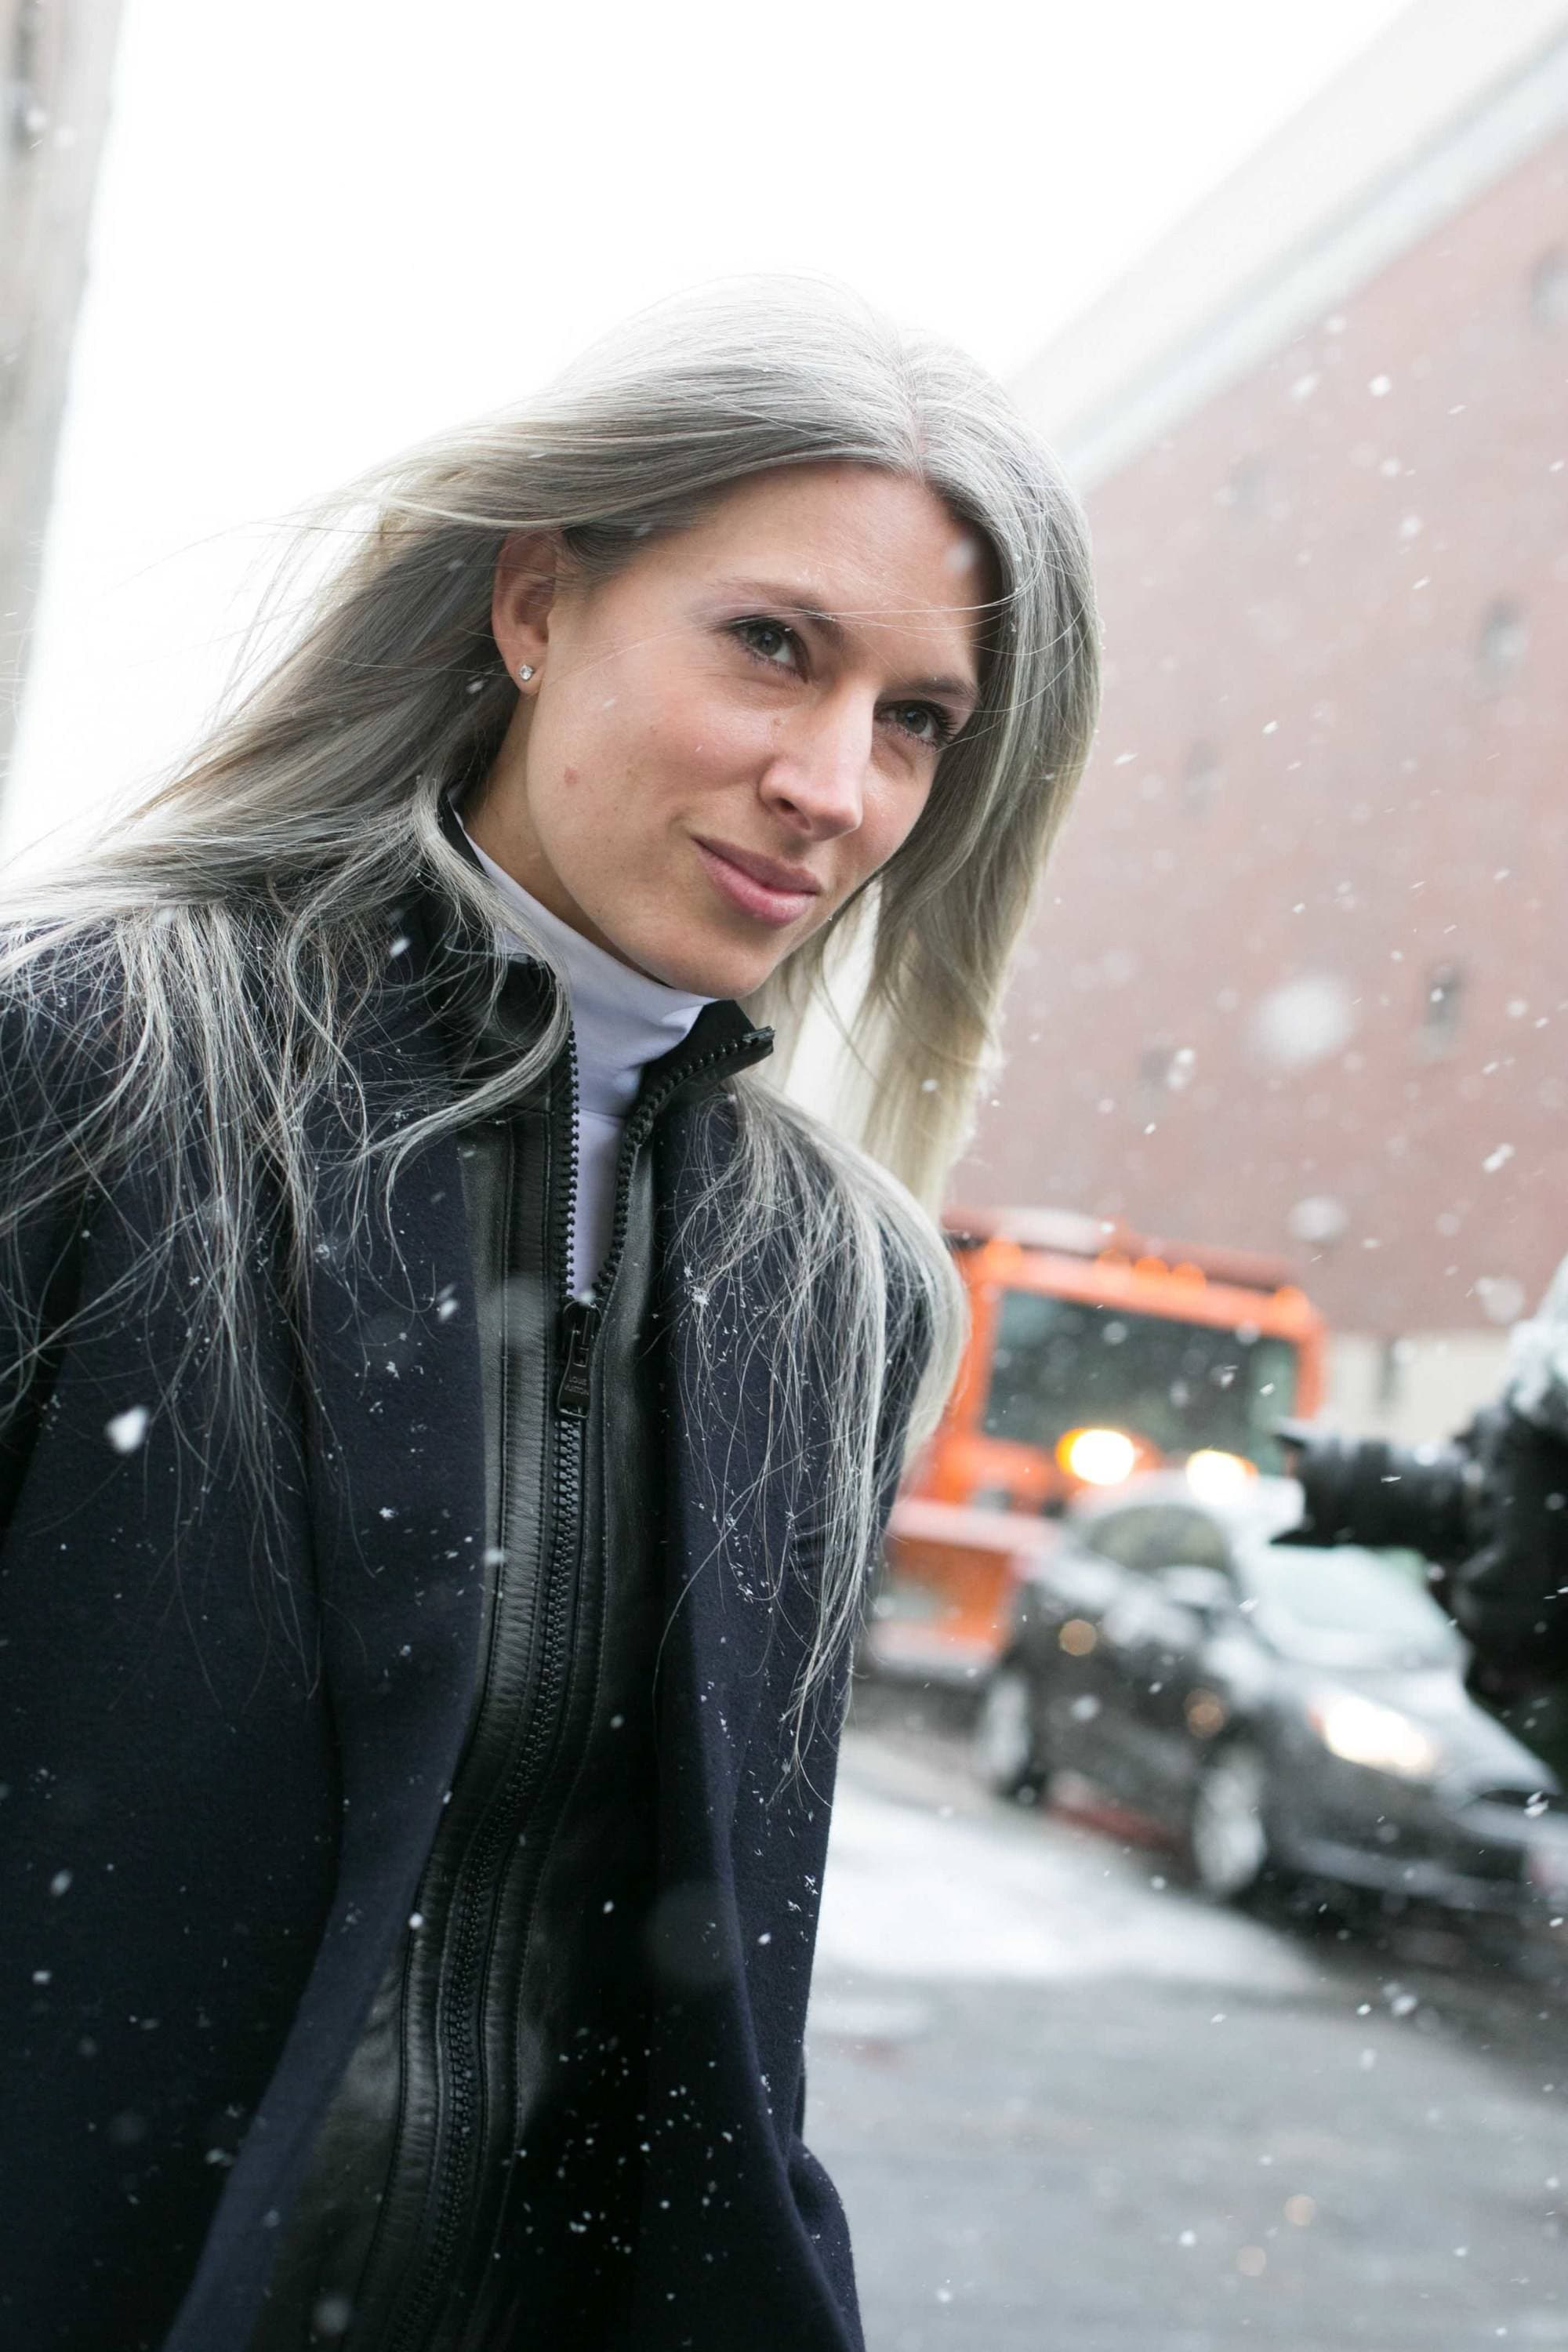 What causes grey hair Sarah Harris from British Vogue with long silver hair outside